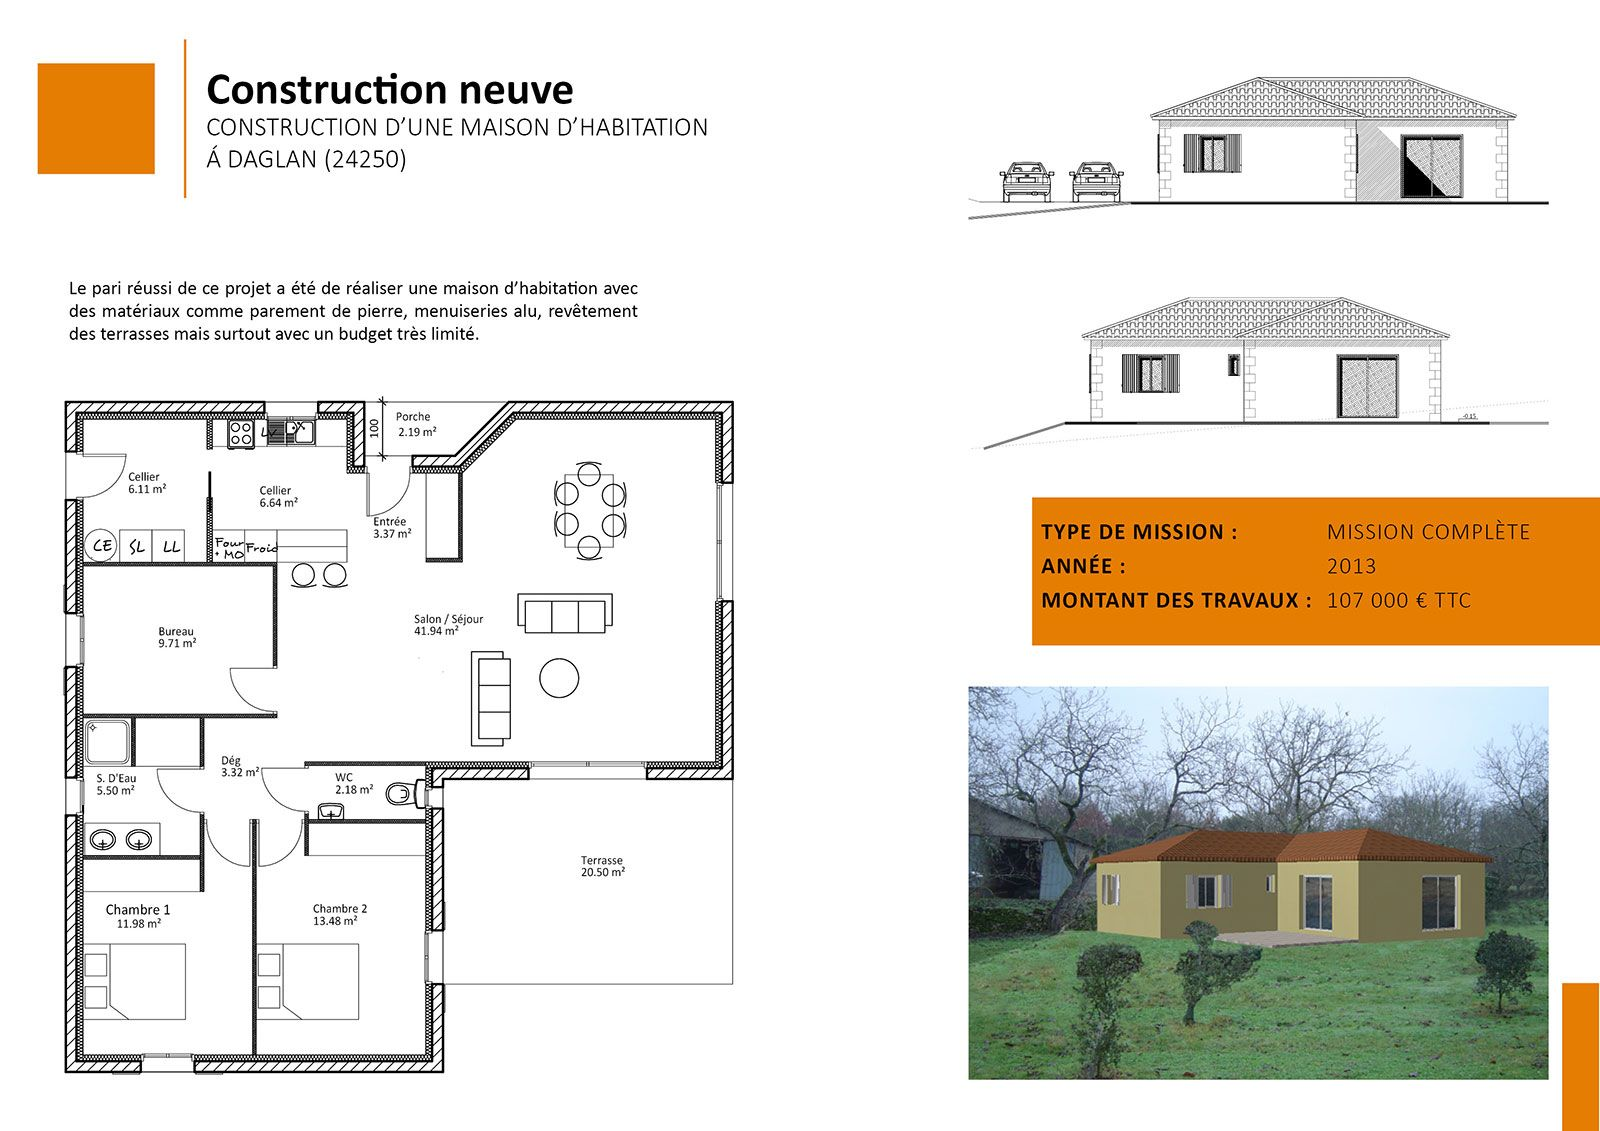 Plan architectural d une maison devoiler plus photo et concepts les